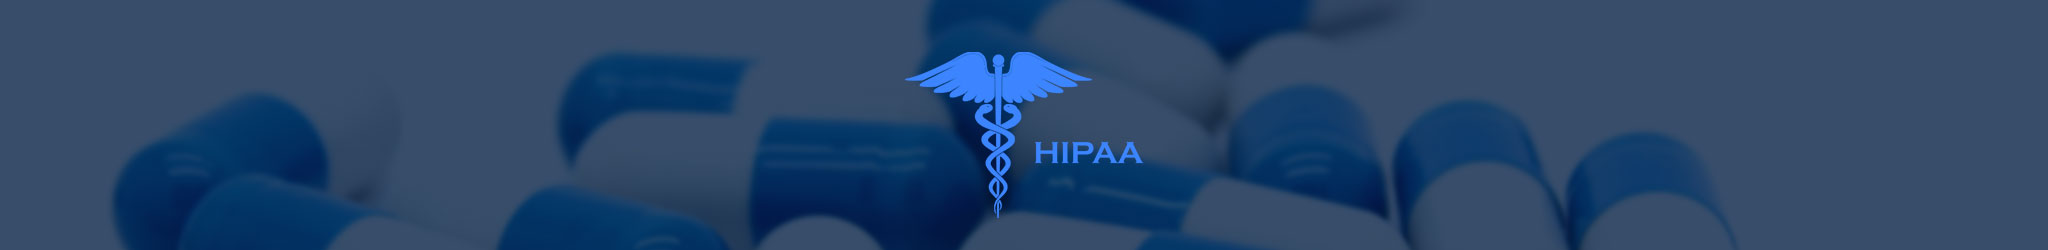 Vaultastic supports HIPAA Compliance for the healthcare industry